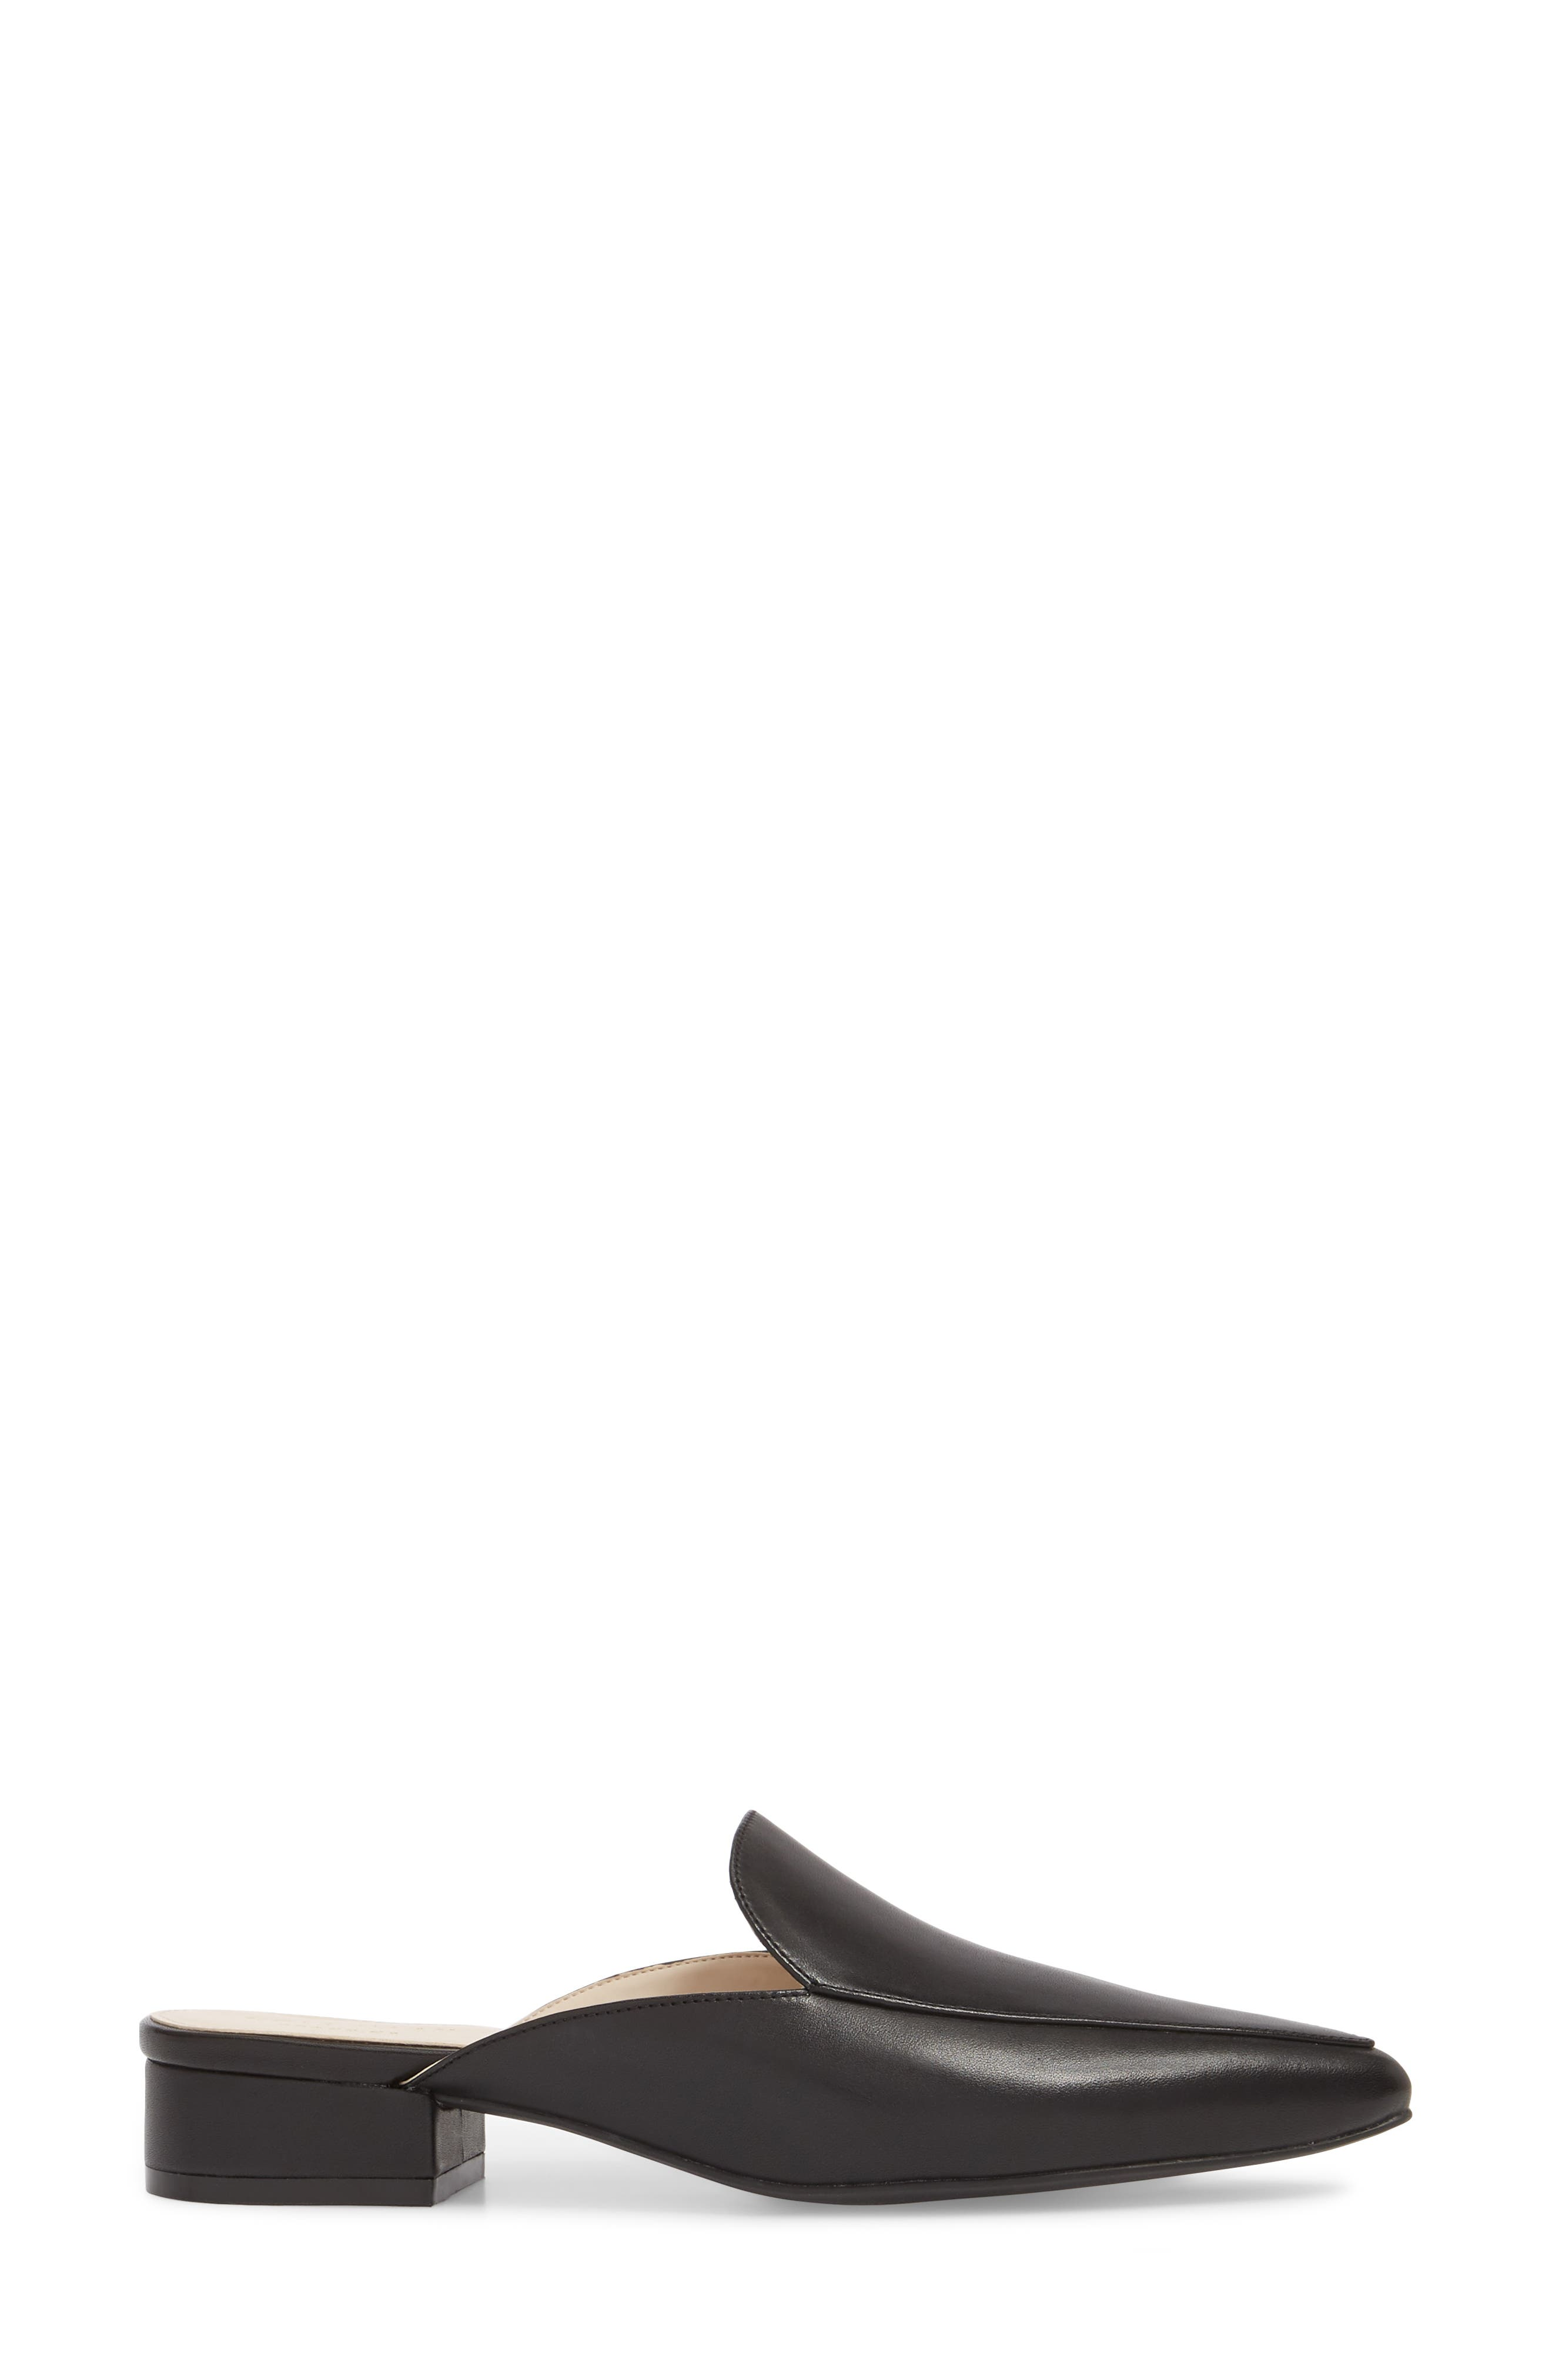 Piper Loafer Mule,                             Alternate thumbnail 3, color,                             Black Leather